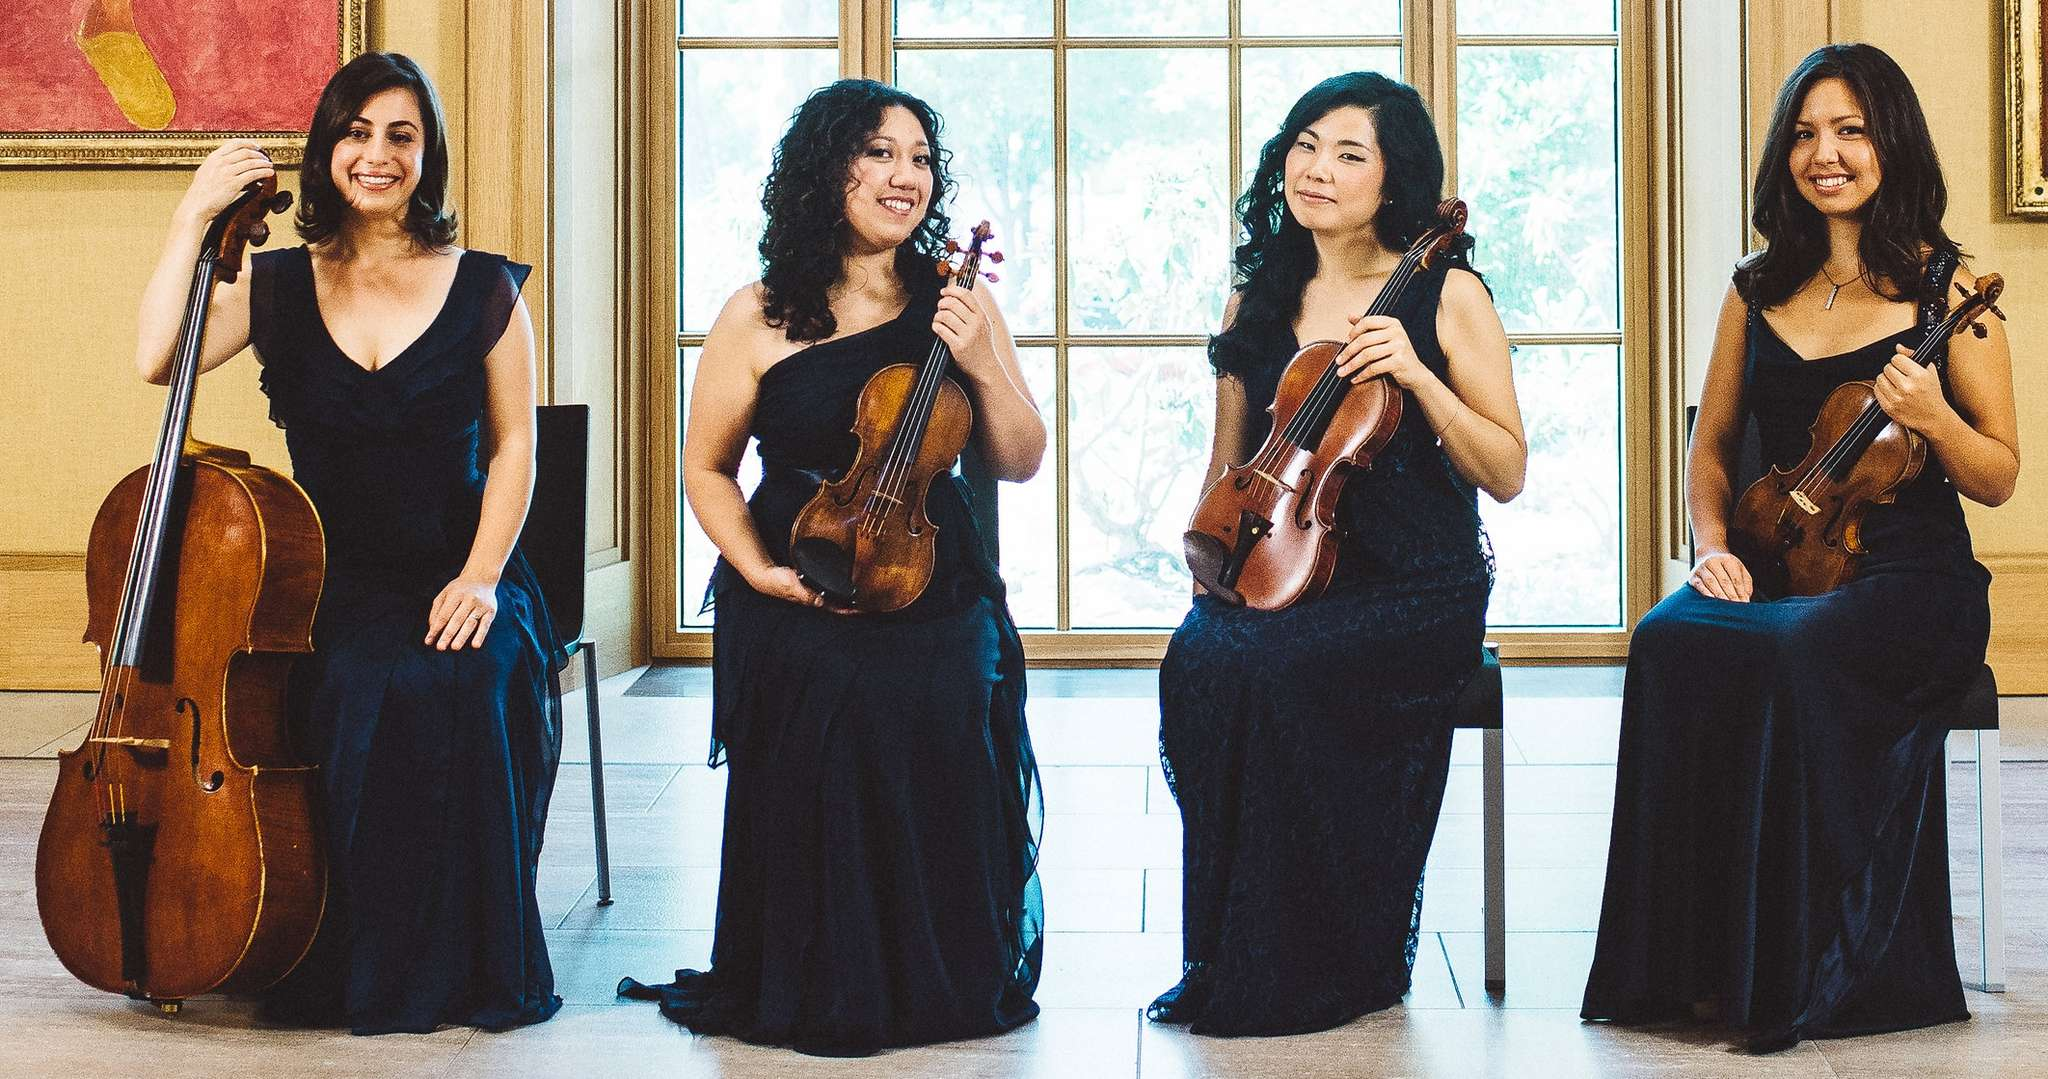 The Aizuri Quartet - (from left) Karen Ouzounian, Miho Saegusa, Ayane Kozasa, and Zoa Martin-Doike - played at Curtis.